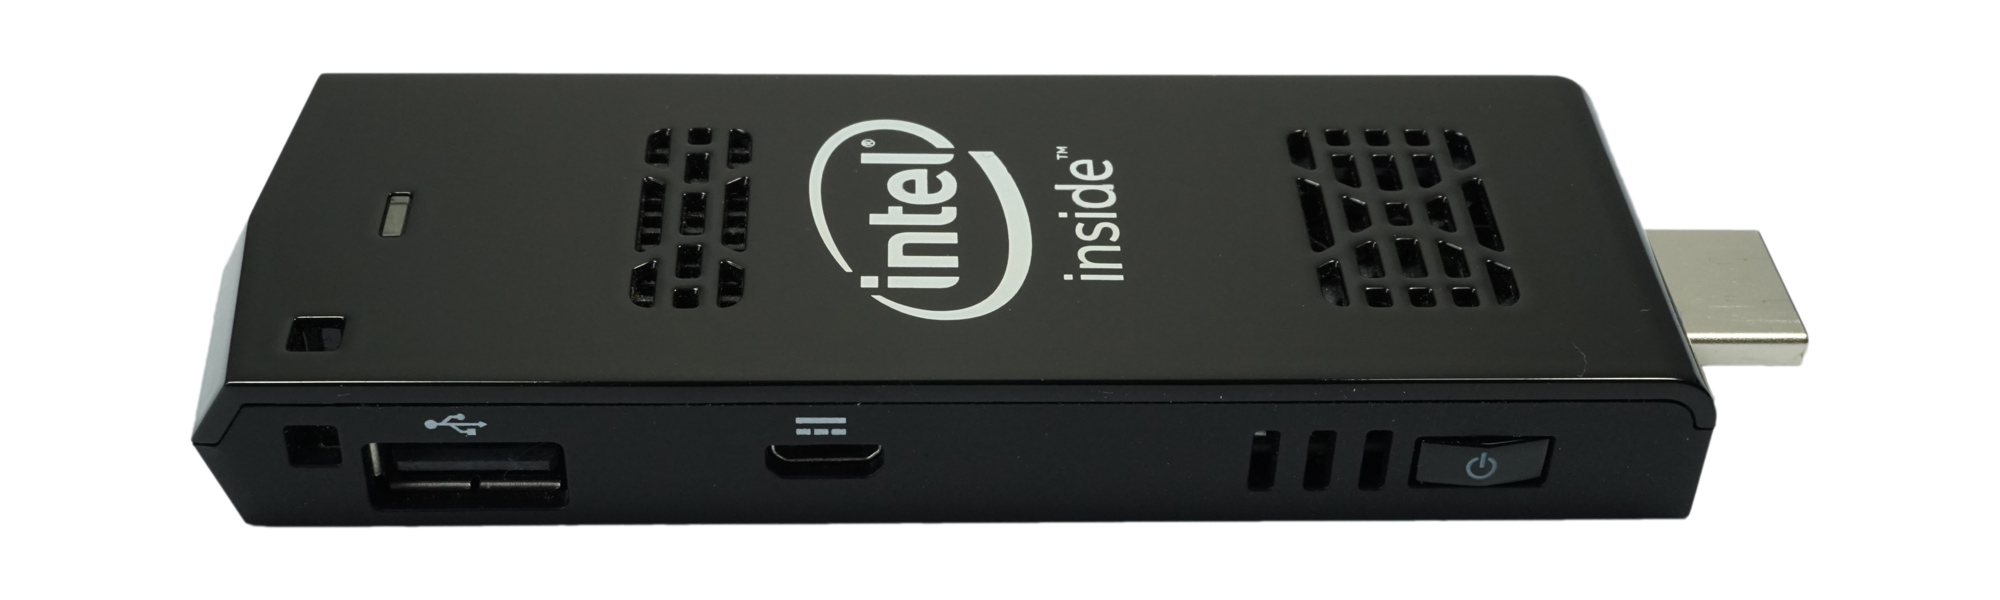 Intel Compute Stick mit Windows 8.1 Bing im Test